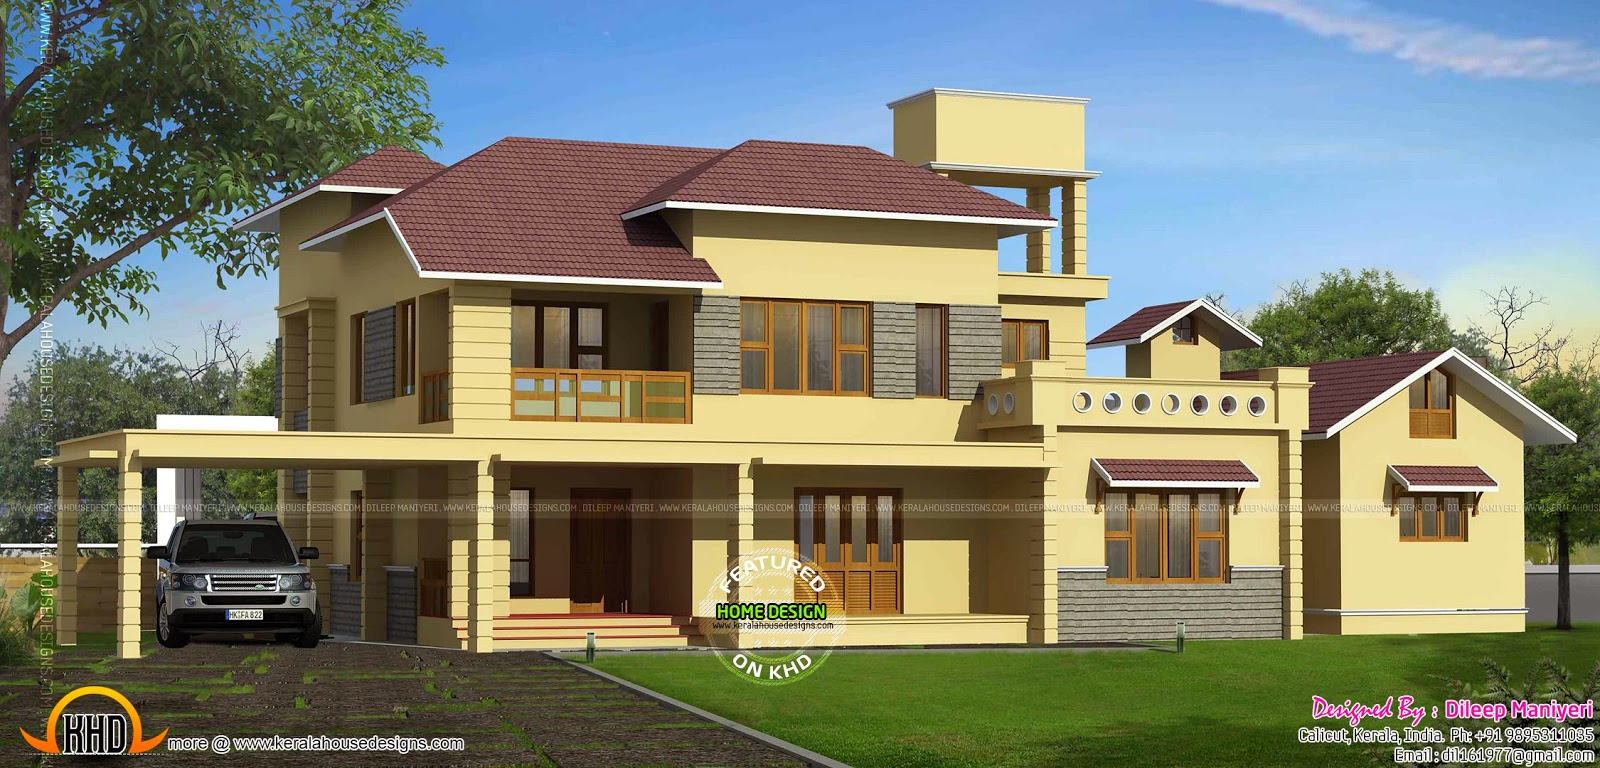 Mixed style house exterior - Kerala home design and floor plans